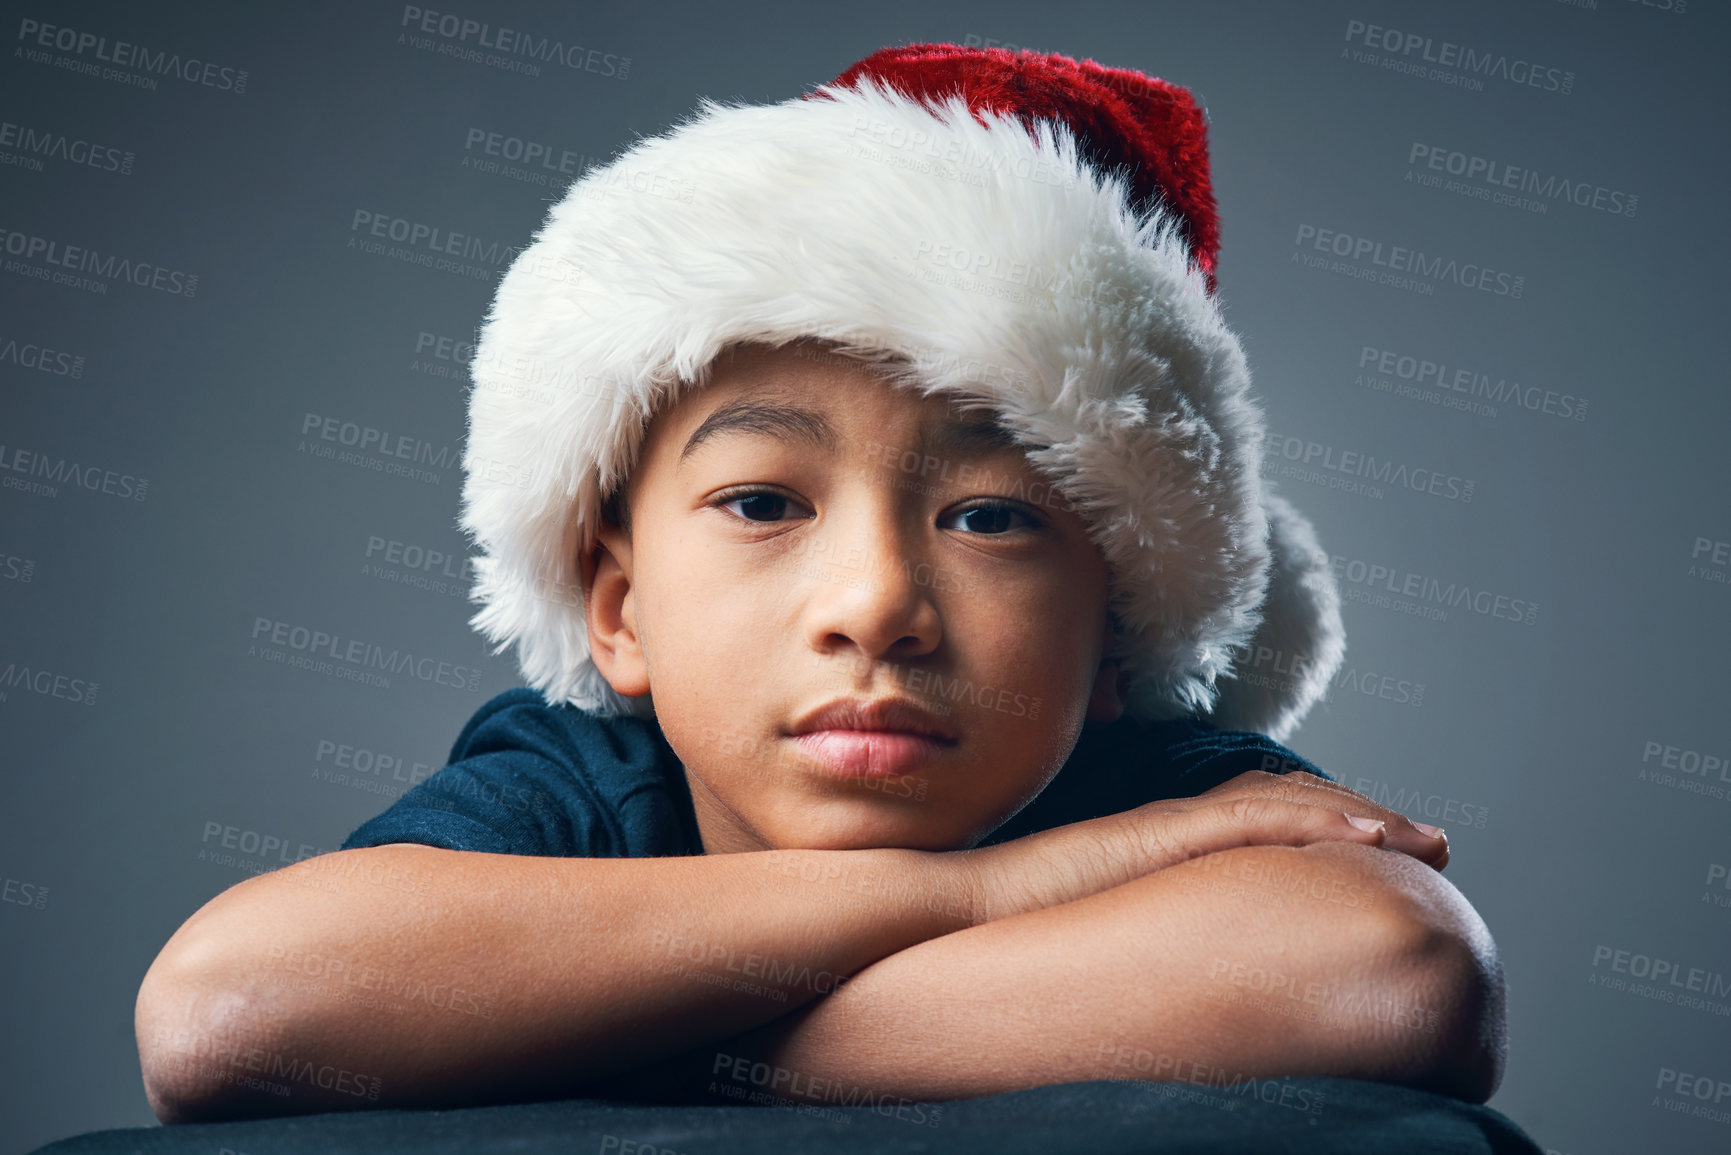 Buy stock photo Studio shot of a cute little boy wearing a Santa hat and looking serious against a grey background